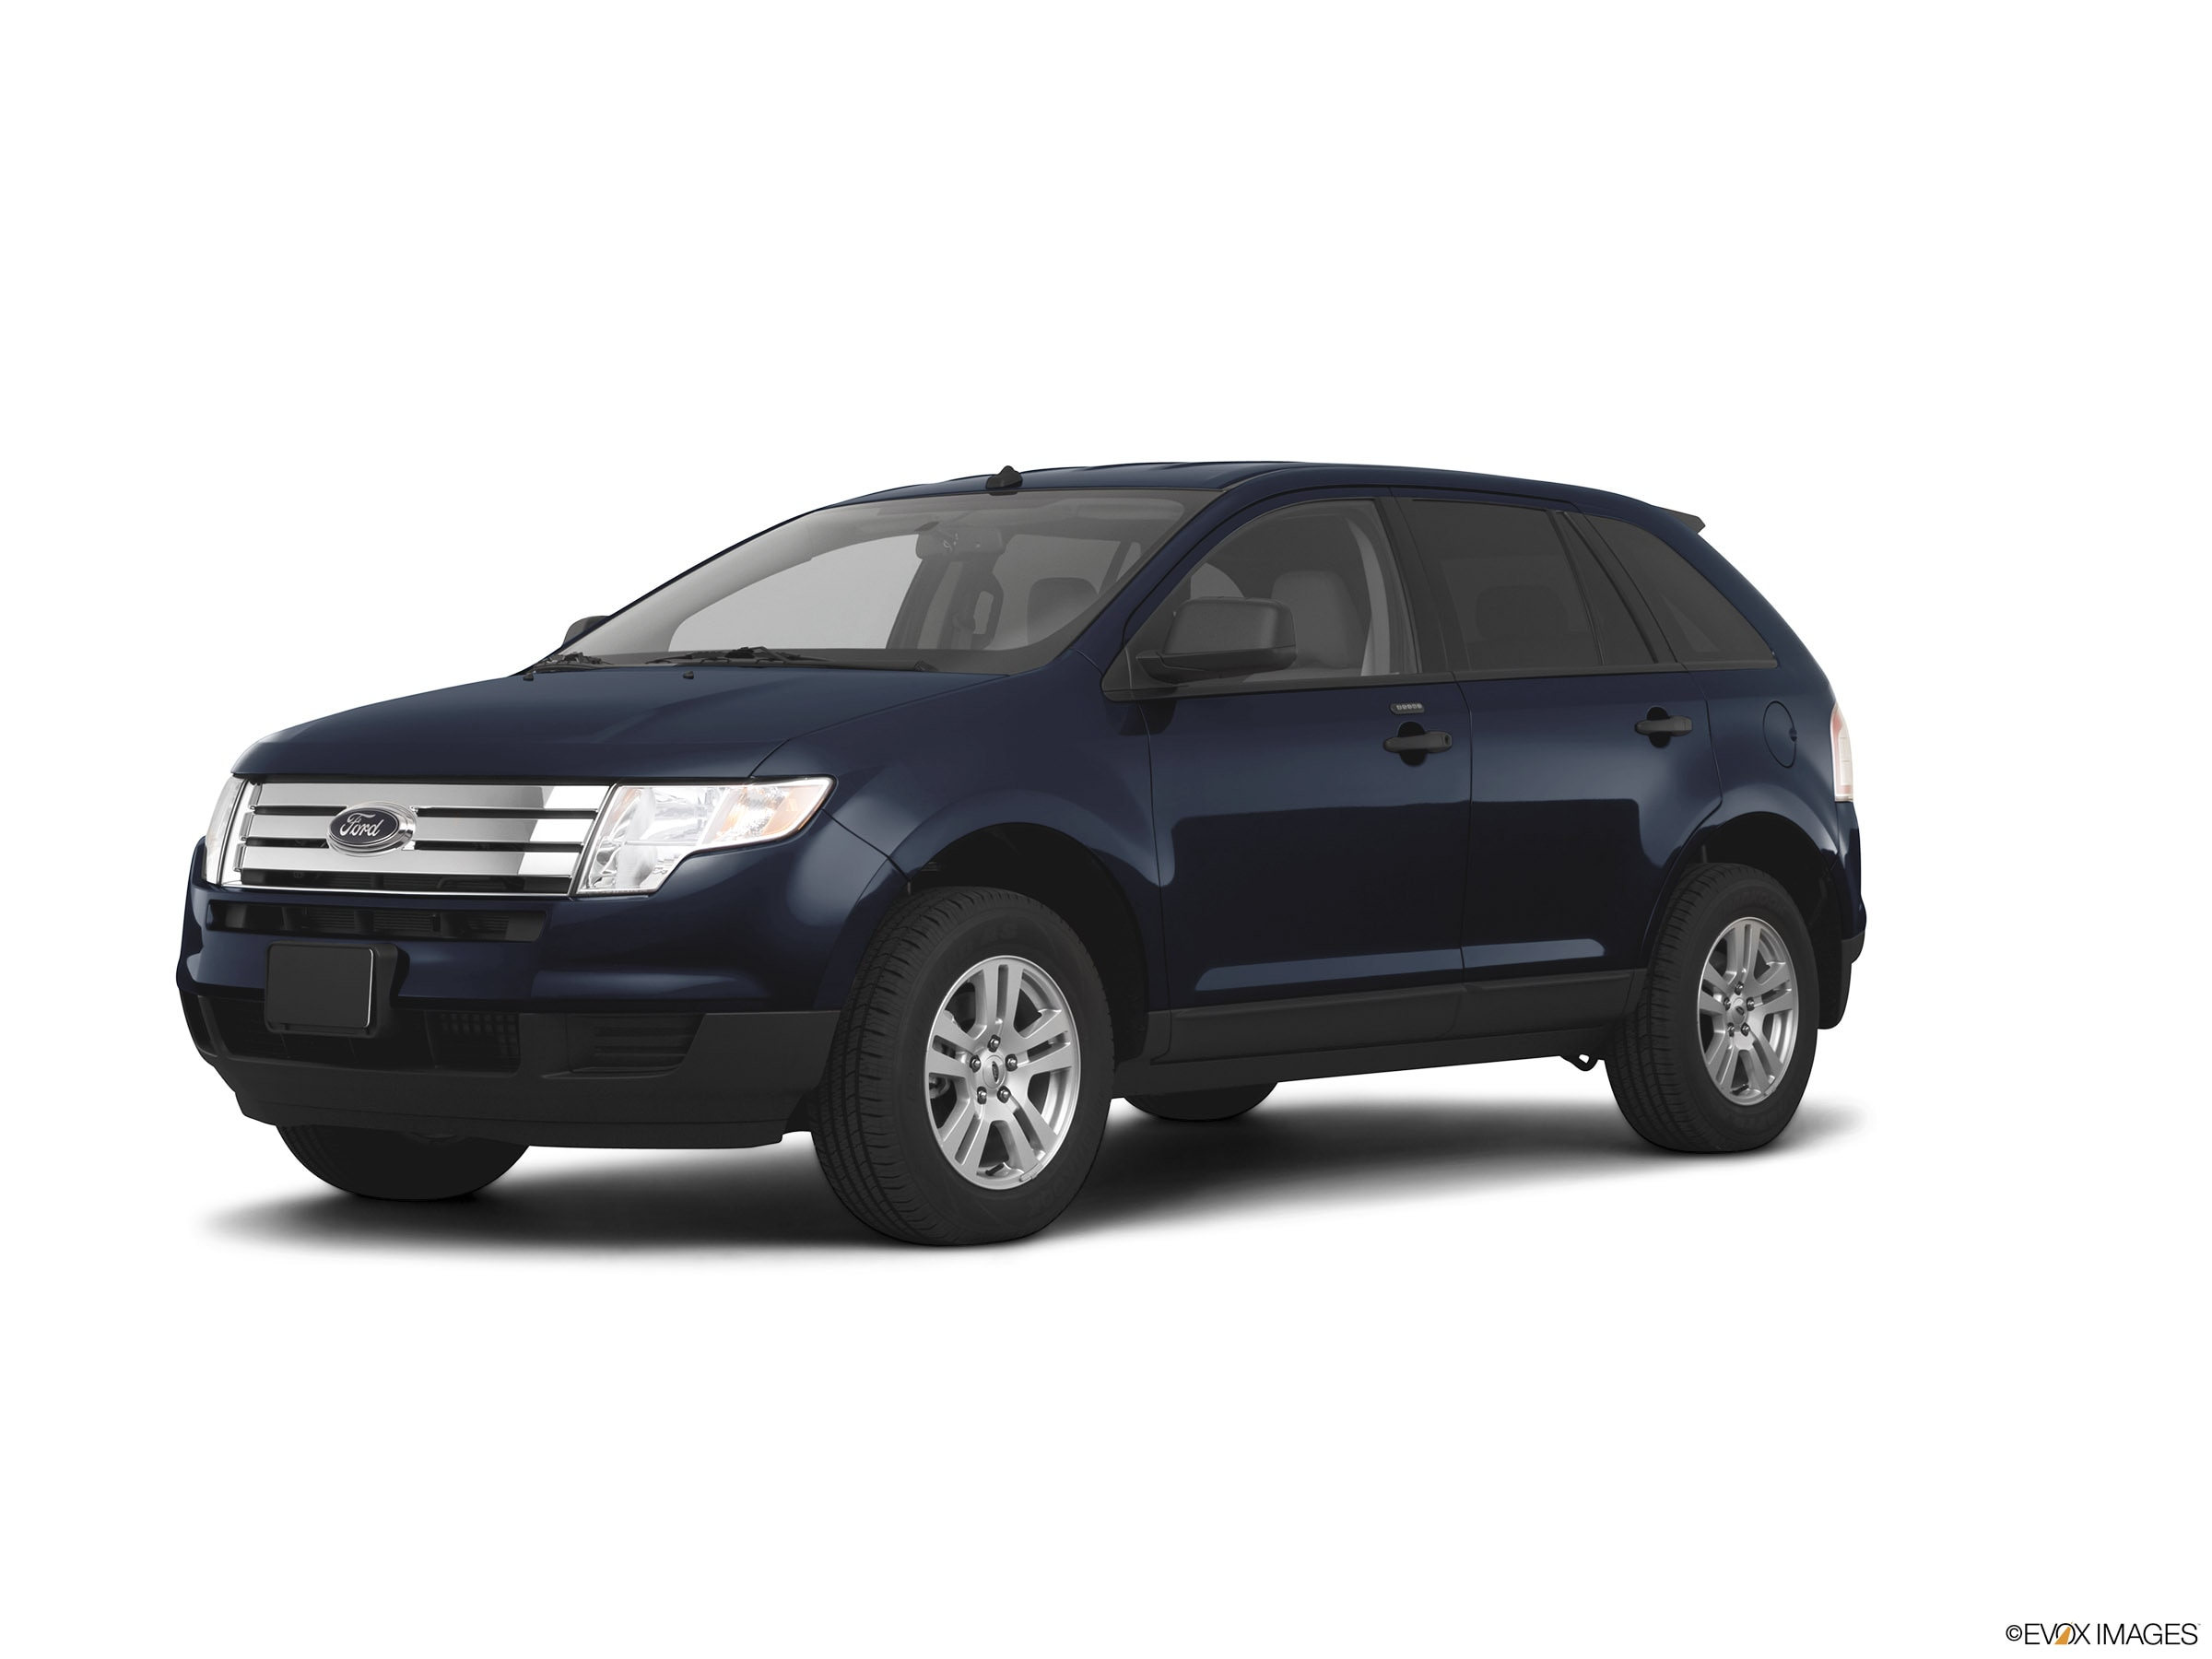 Used 2010 Ford Edge Se Suv Dark Ink Blue For Sale In Boise Id Stock 354n